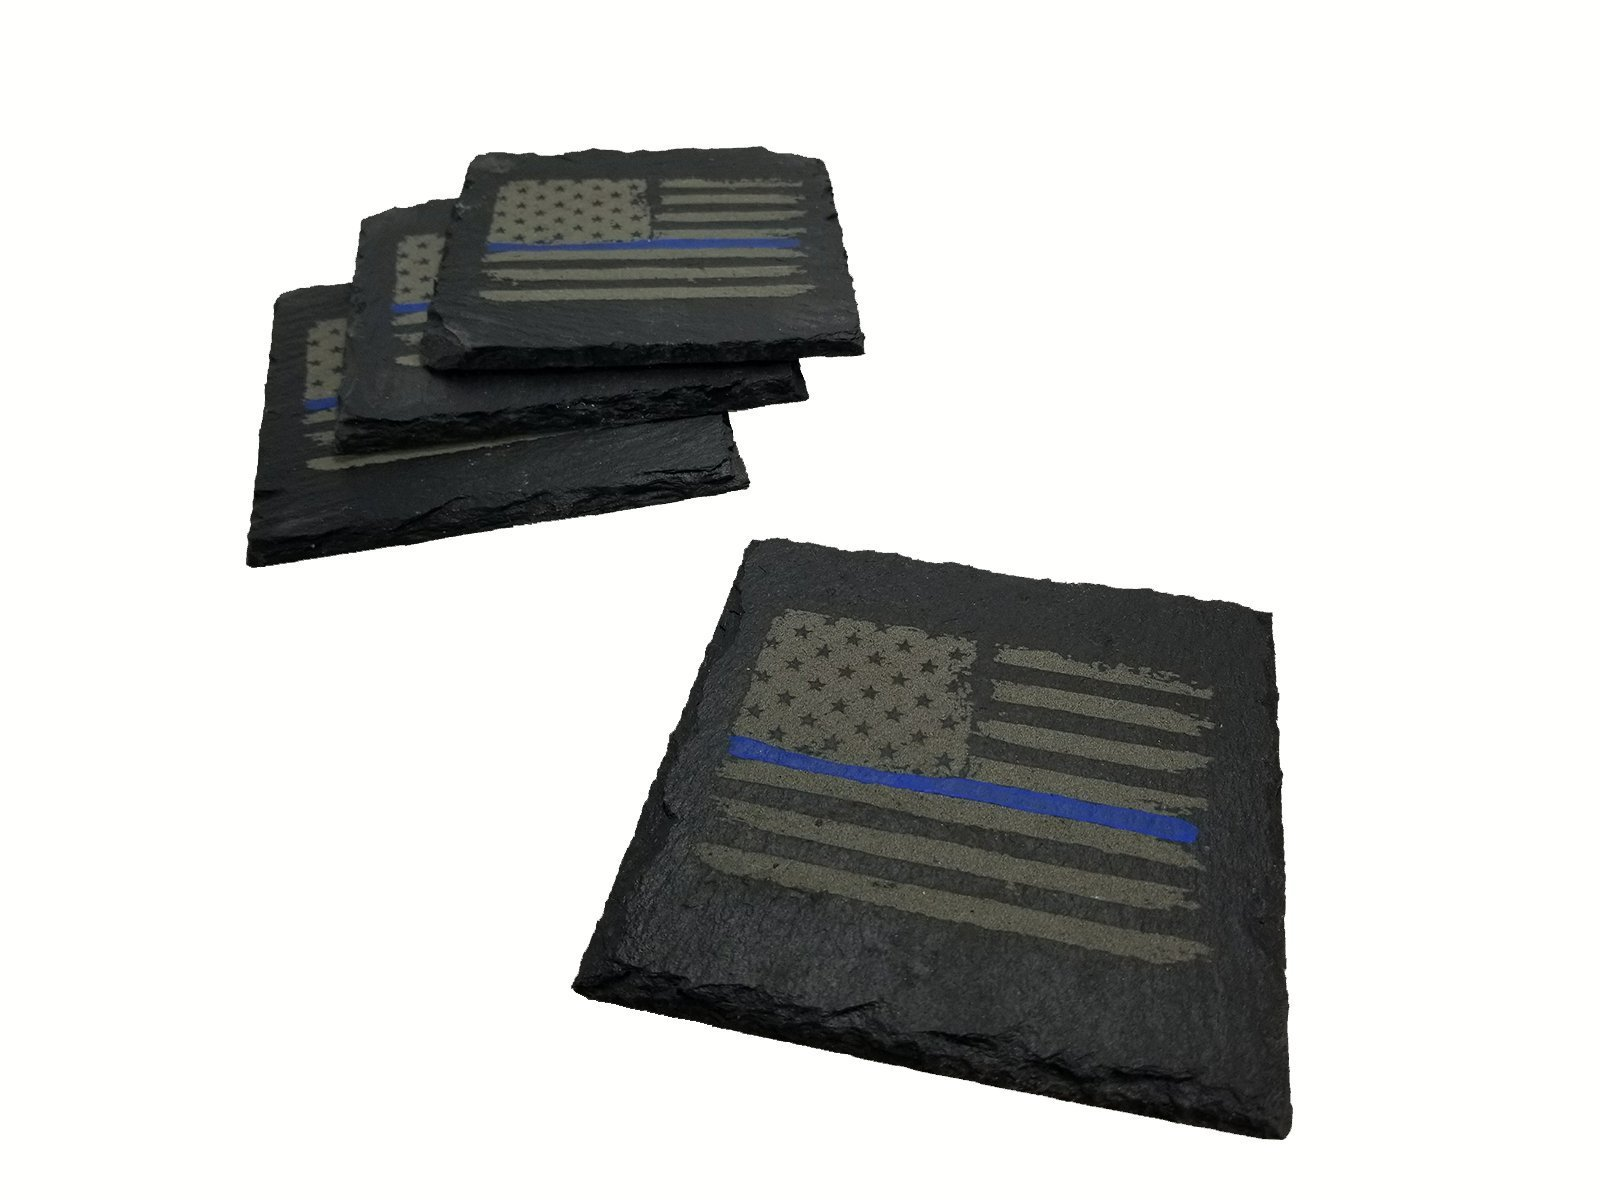 Police Thin Blue Line Distressed American Flag Slate Coaster Set by five1designs